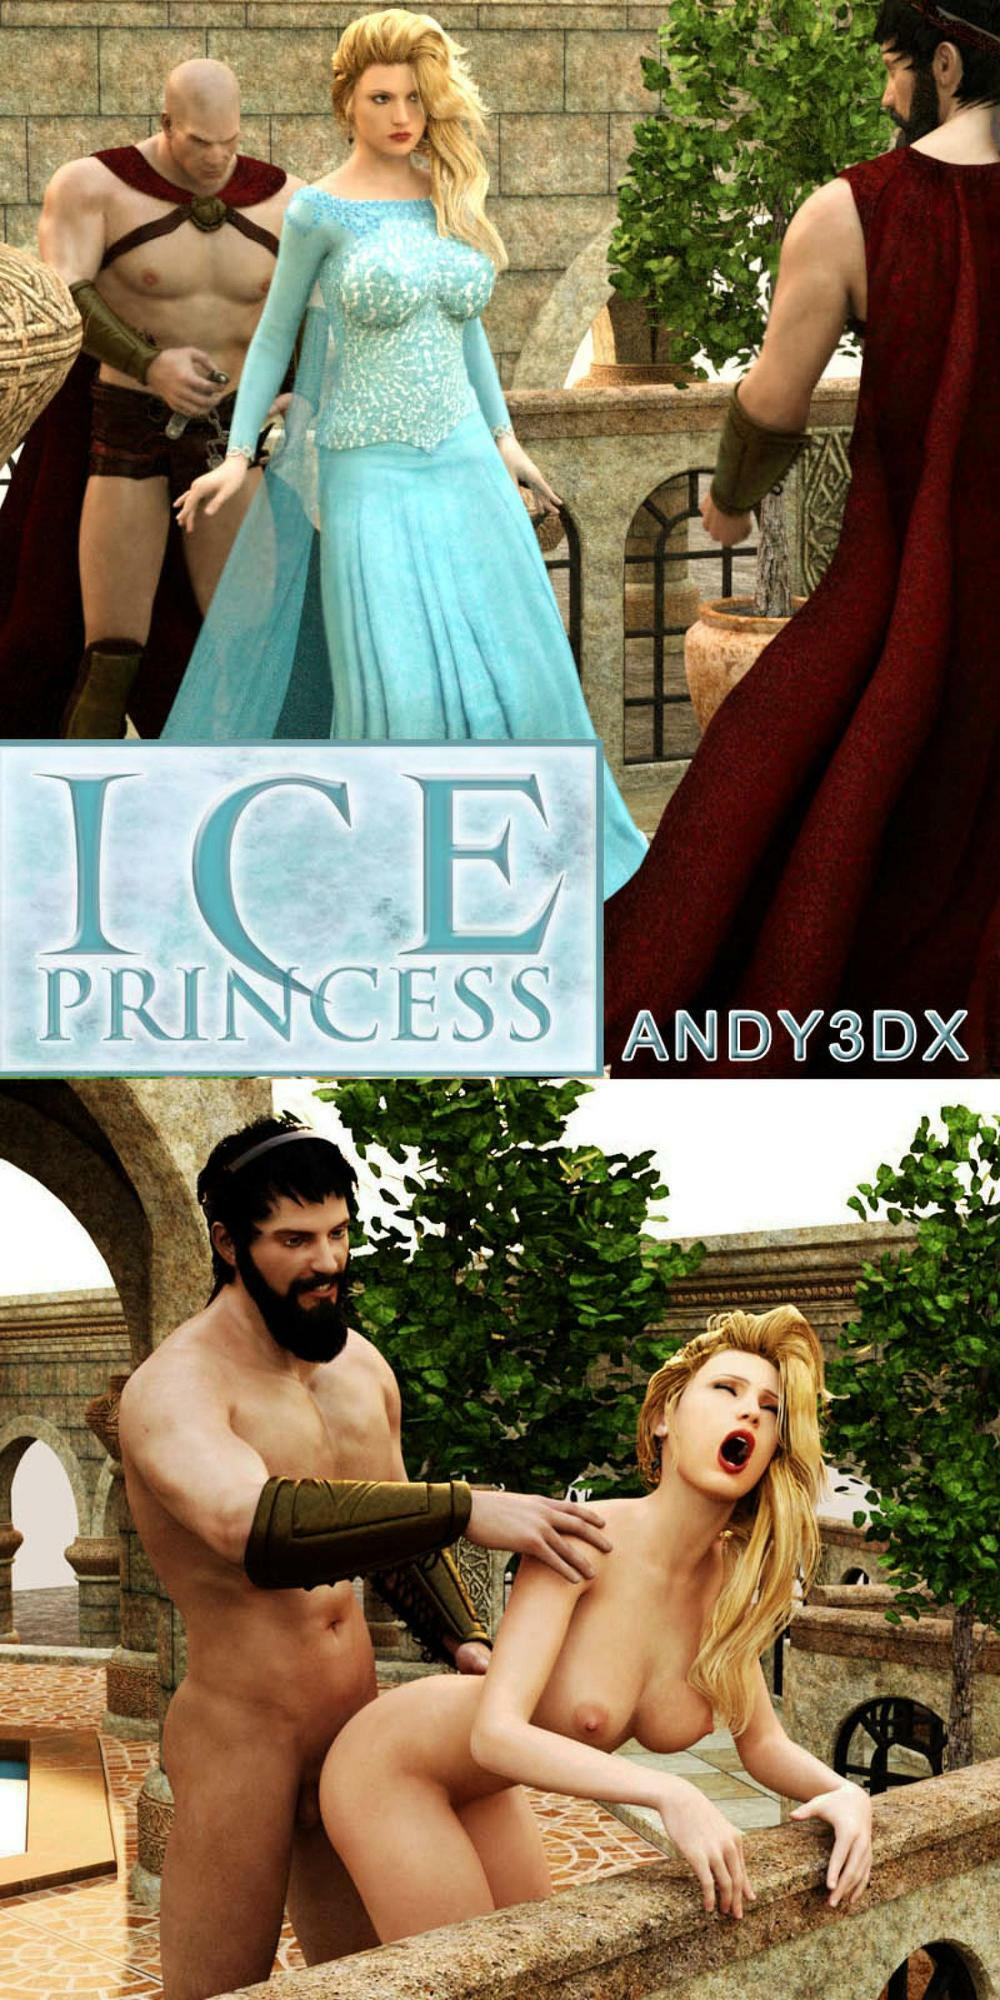 ANDY3DX – STORY ABOUT ICE PRINCESS